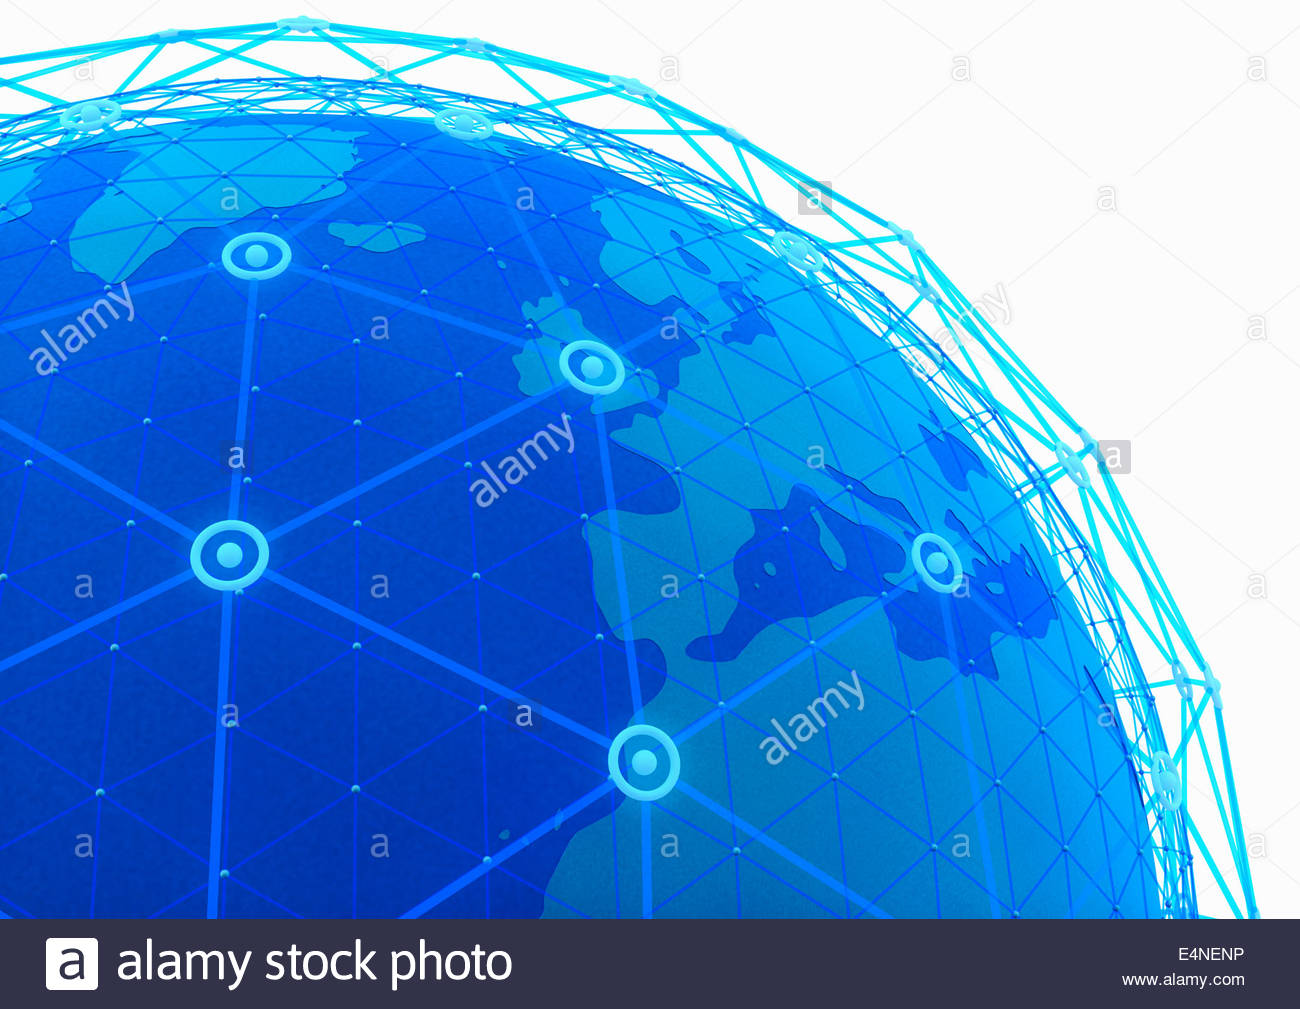 Blue network grid covering globe focused on Europe - Stock Image